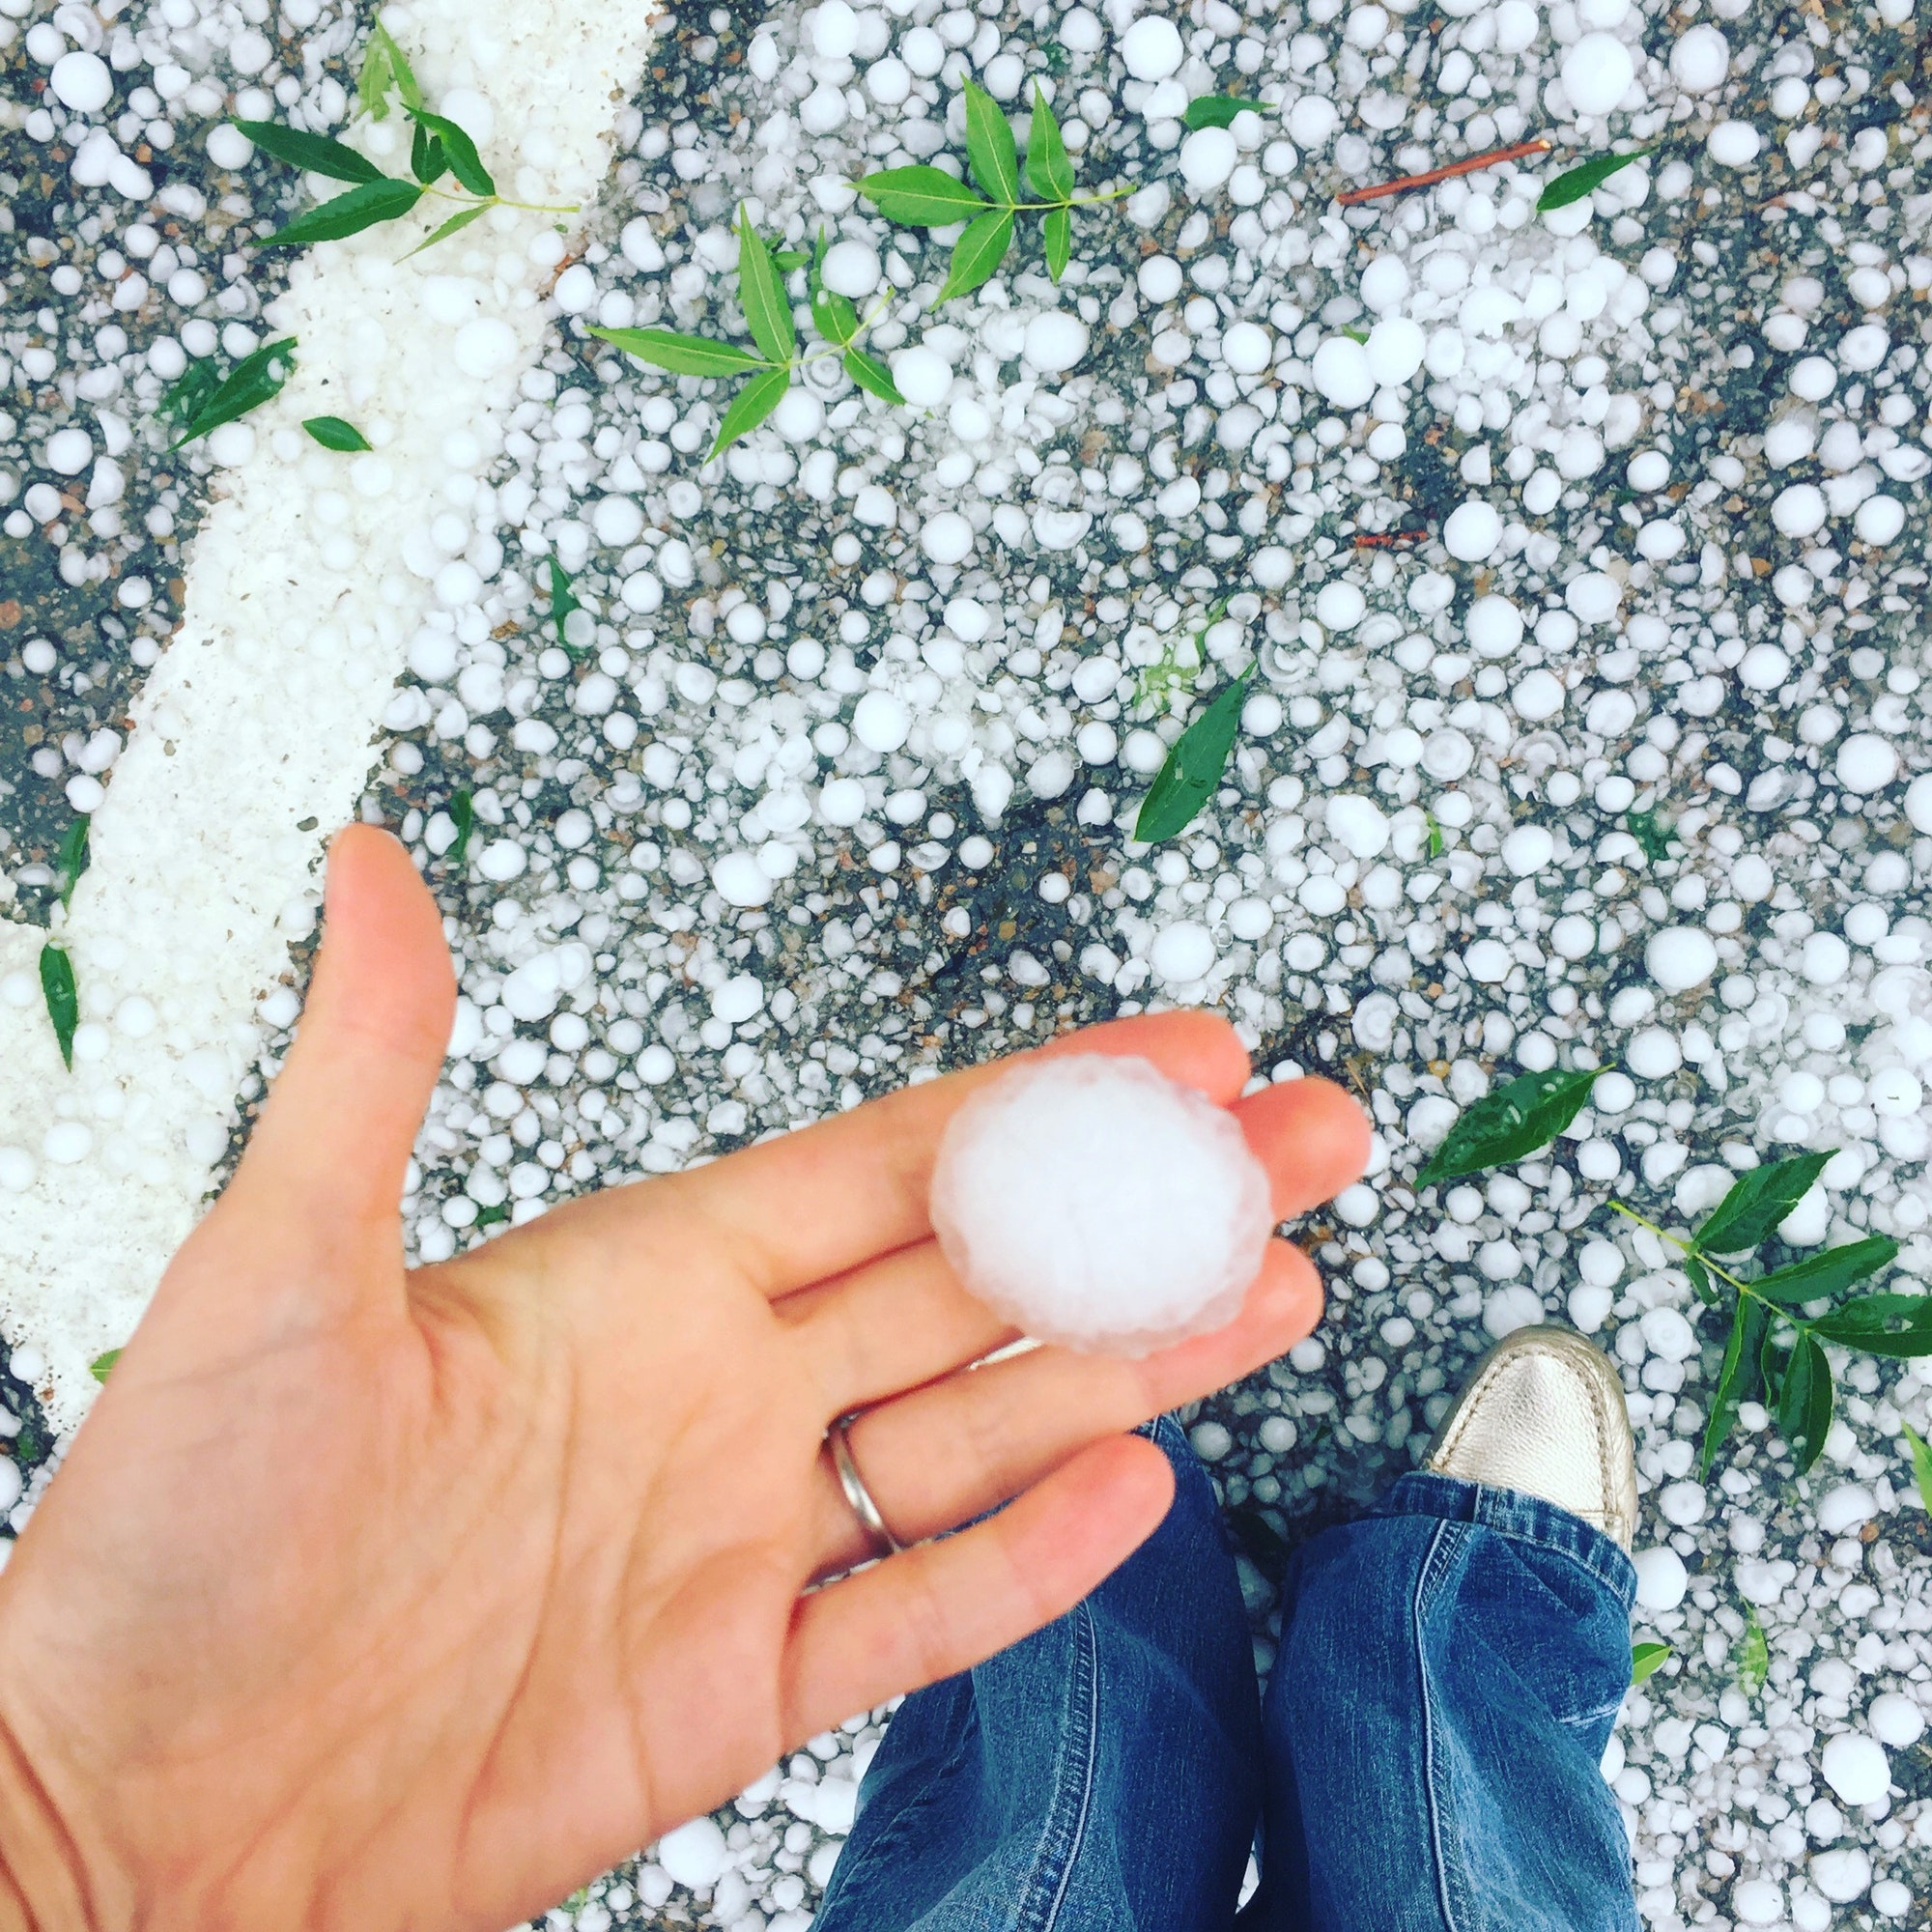 Hail. women's hand to compare the size of hail pic in white green and blue colors